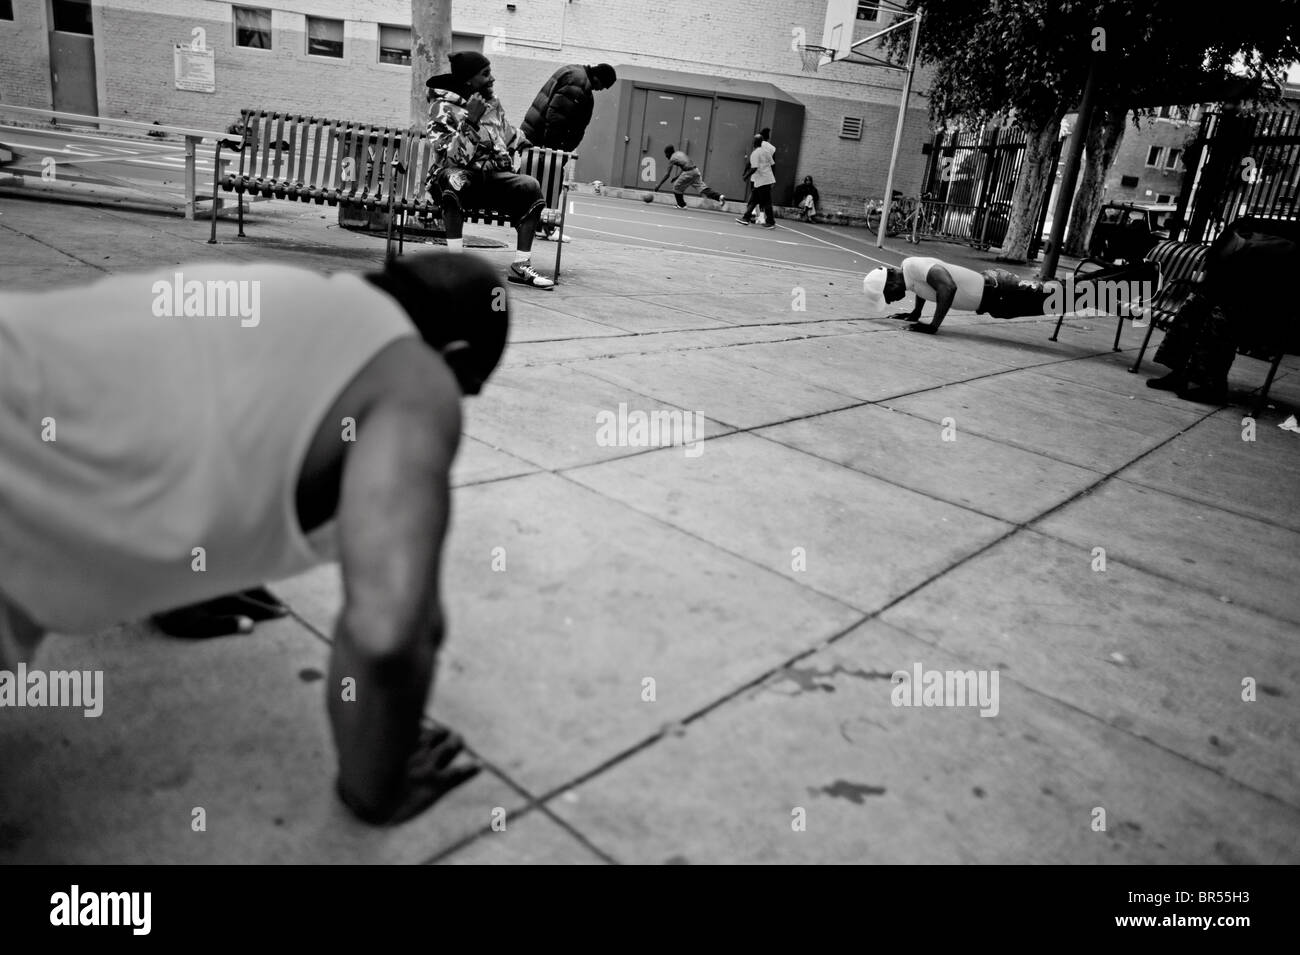 Homeless in the Skid Row area of Los Angeles California. Stock Photo